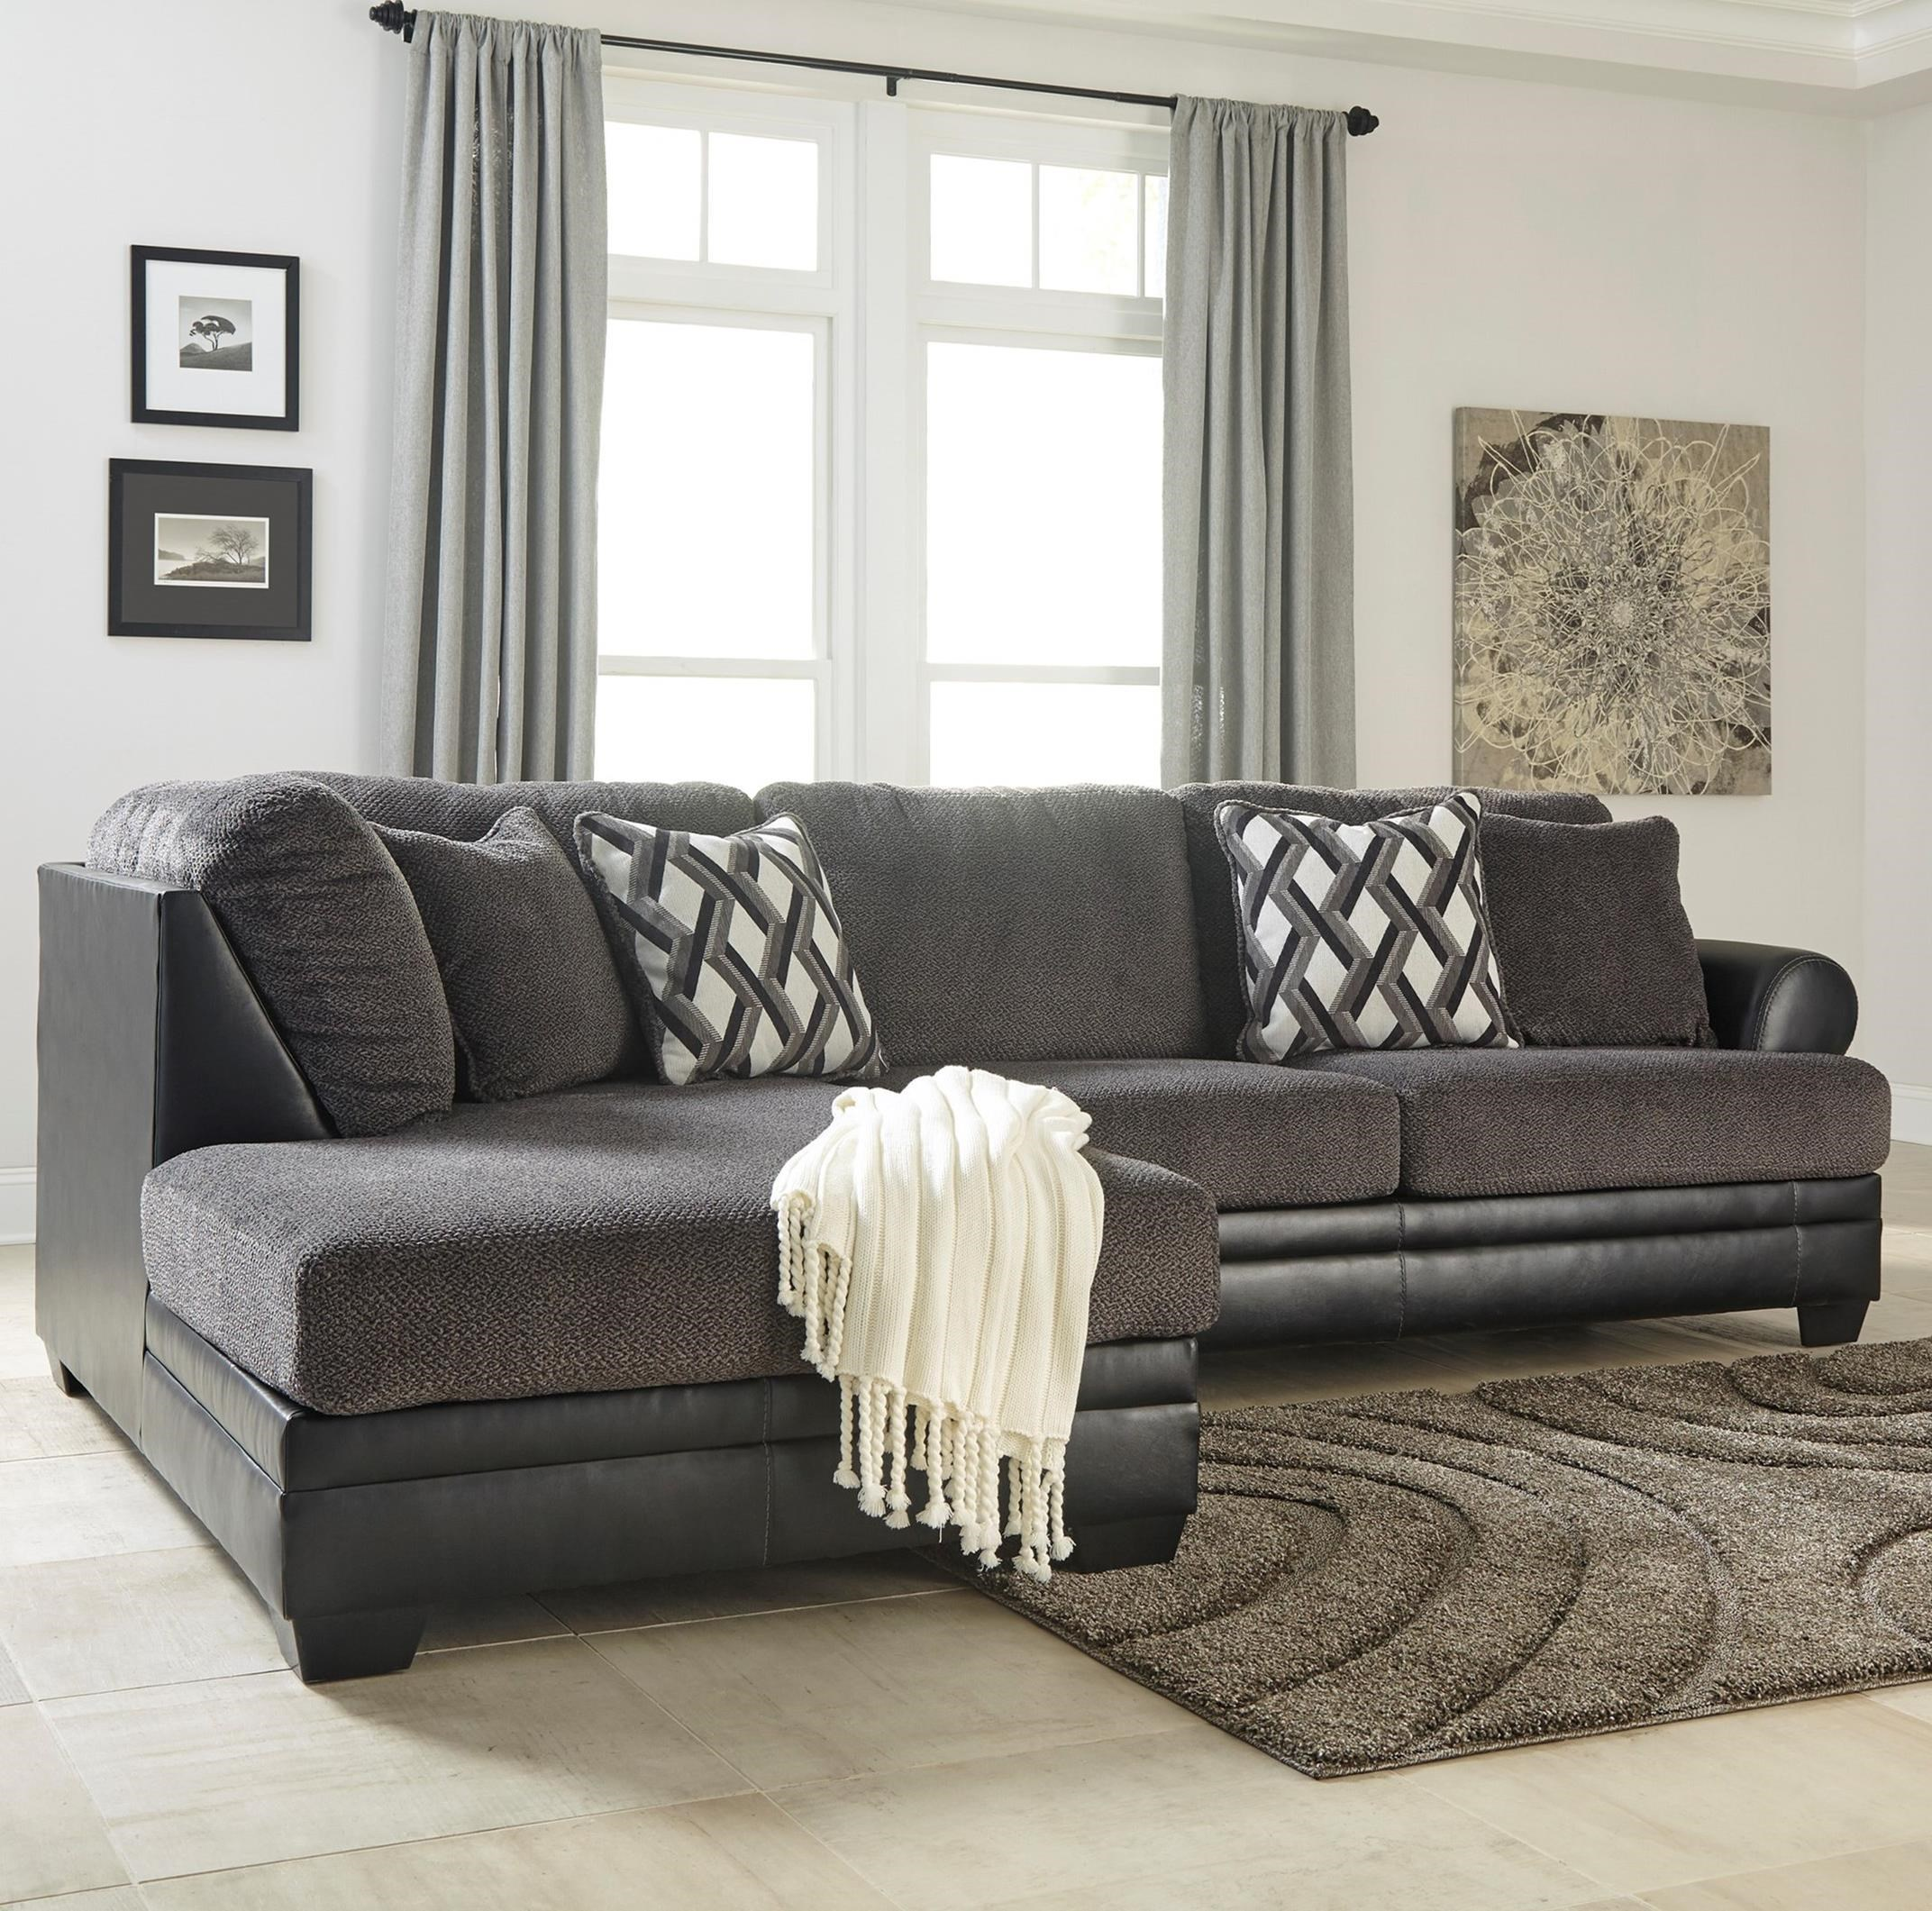 Kumasi 2-Piece Sectional with Left Chaise by Benchcraft at Miller Waldrop Furniture and Decor